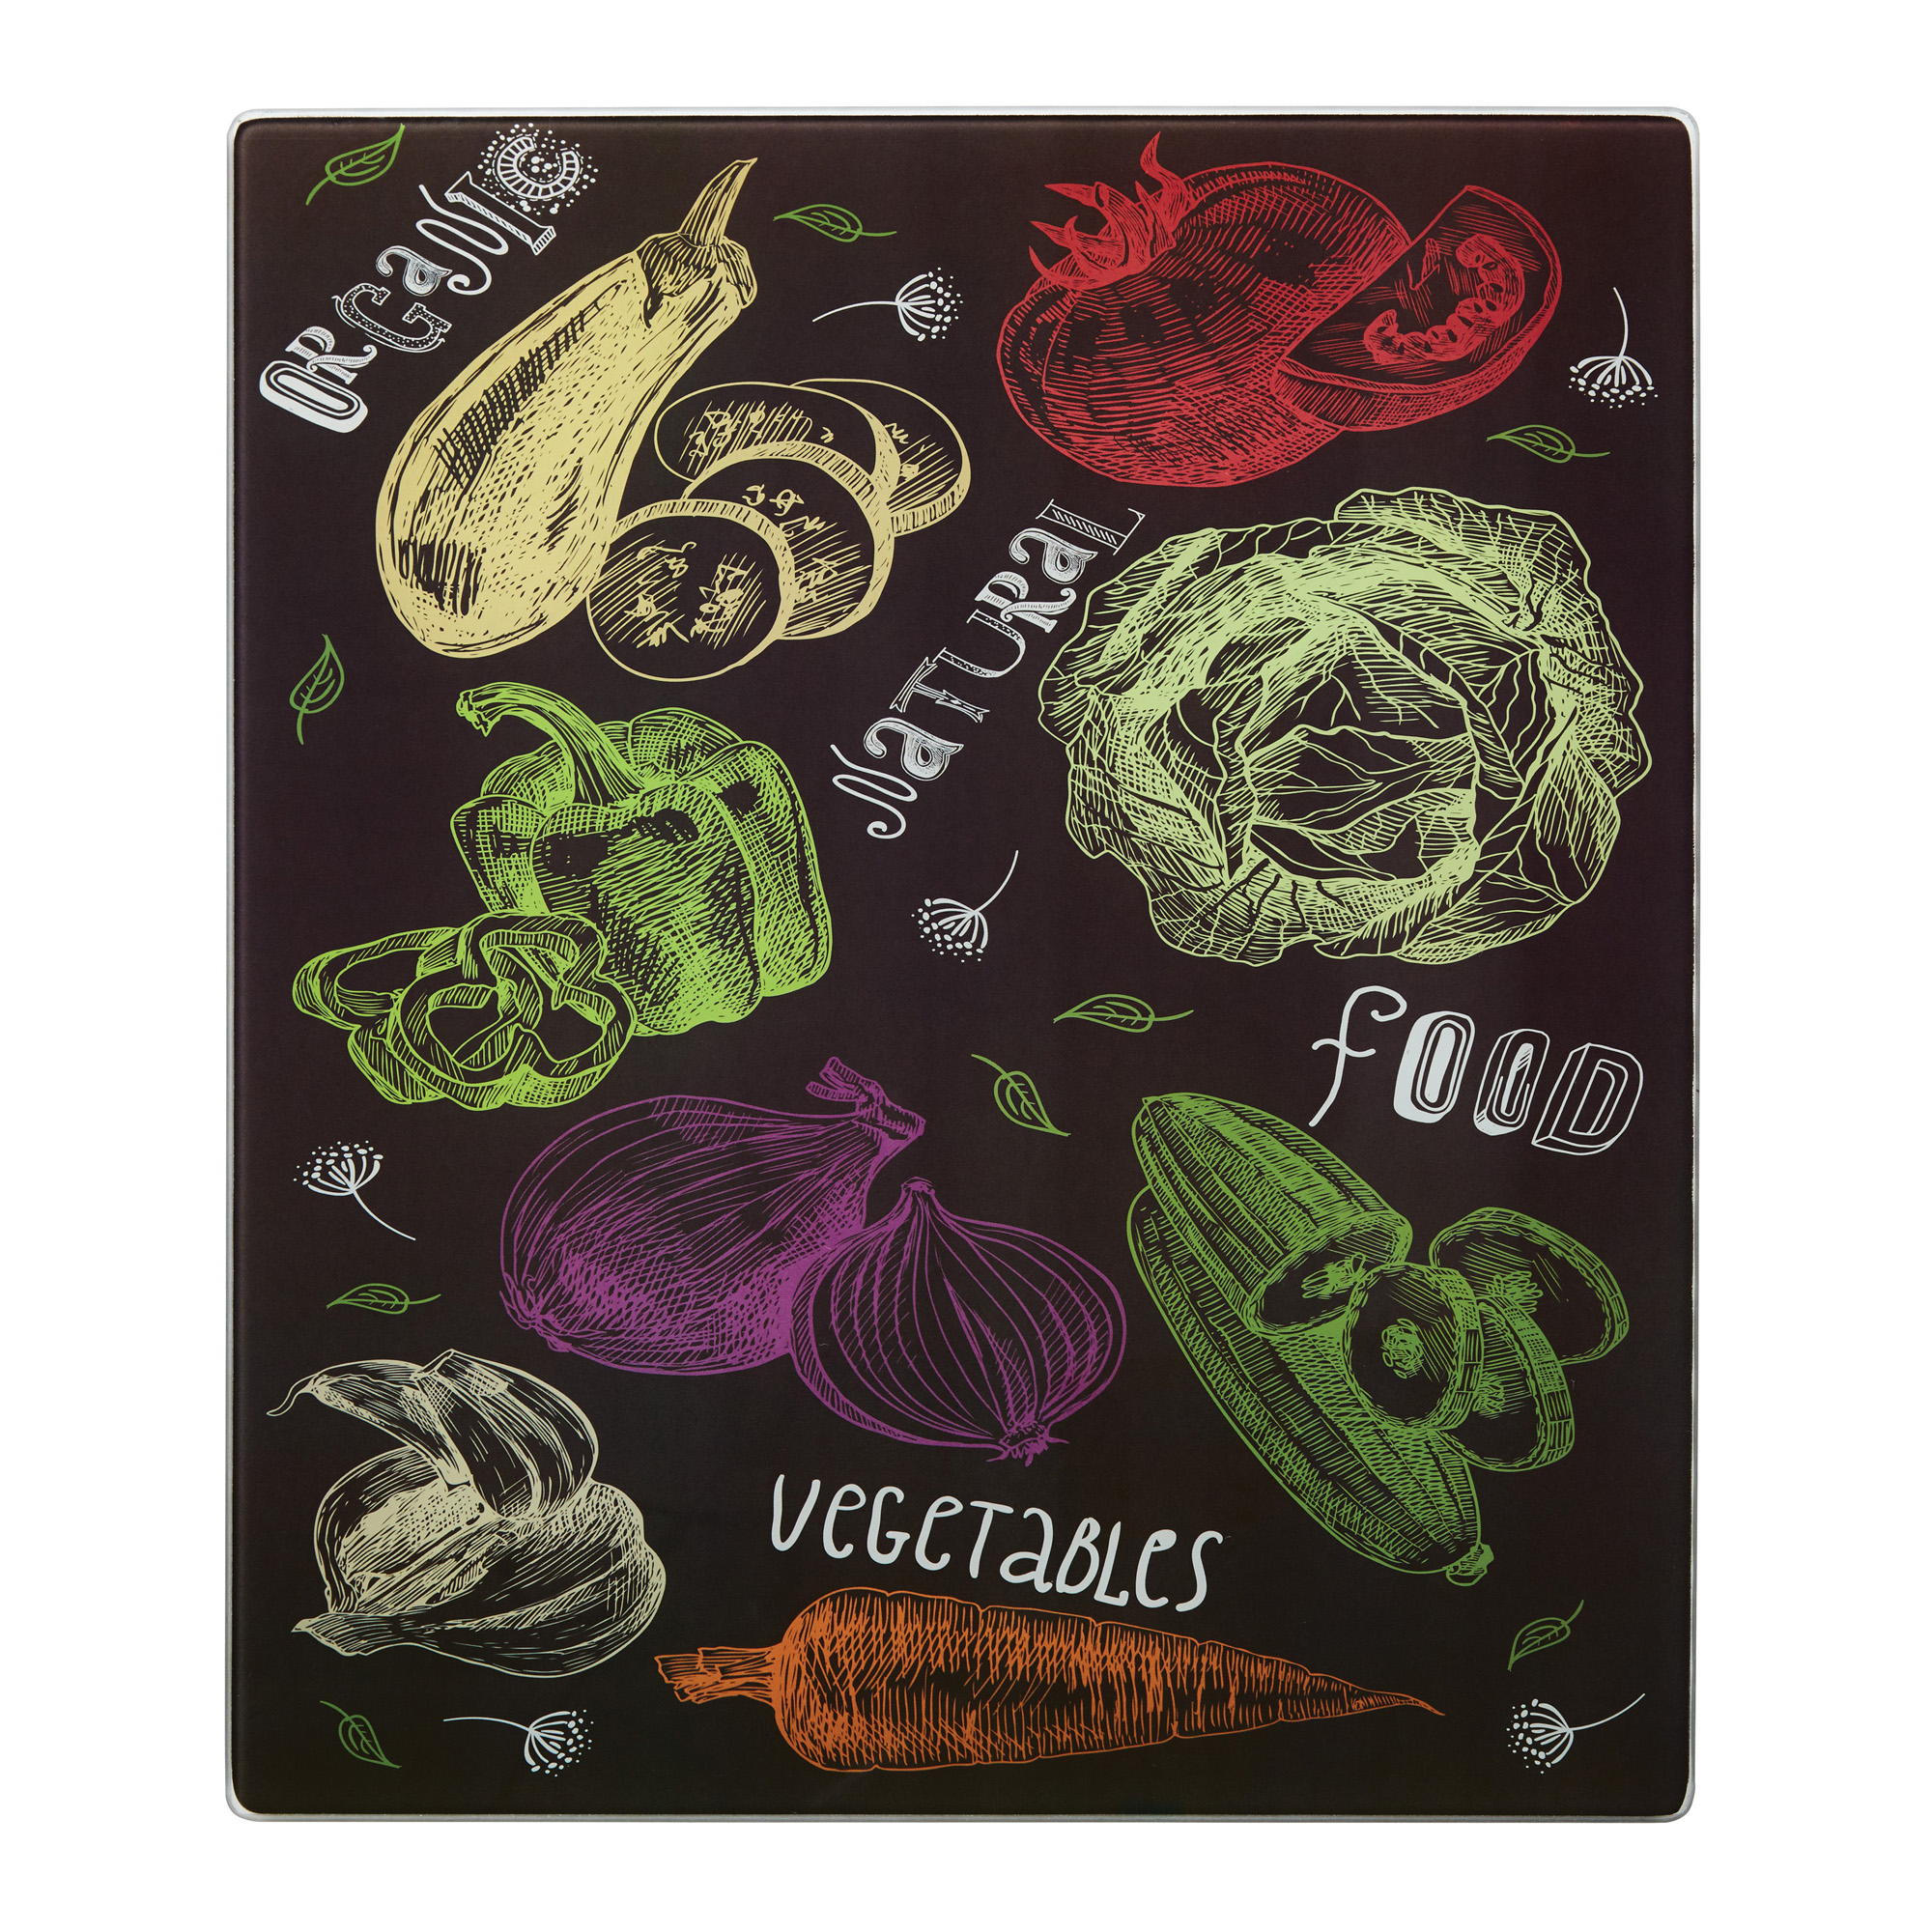 Farberware 12 Inch By 14 inch Nonslip Glass Cutting Board, Veggies